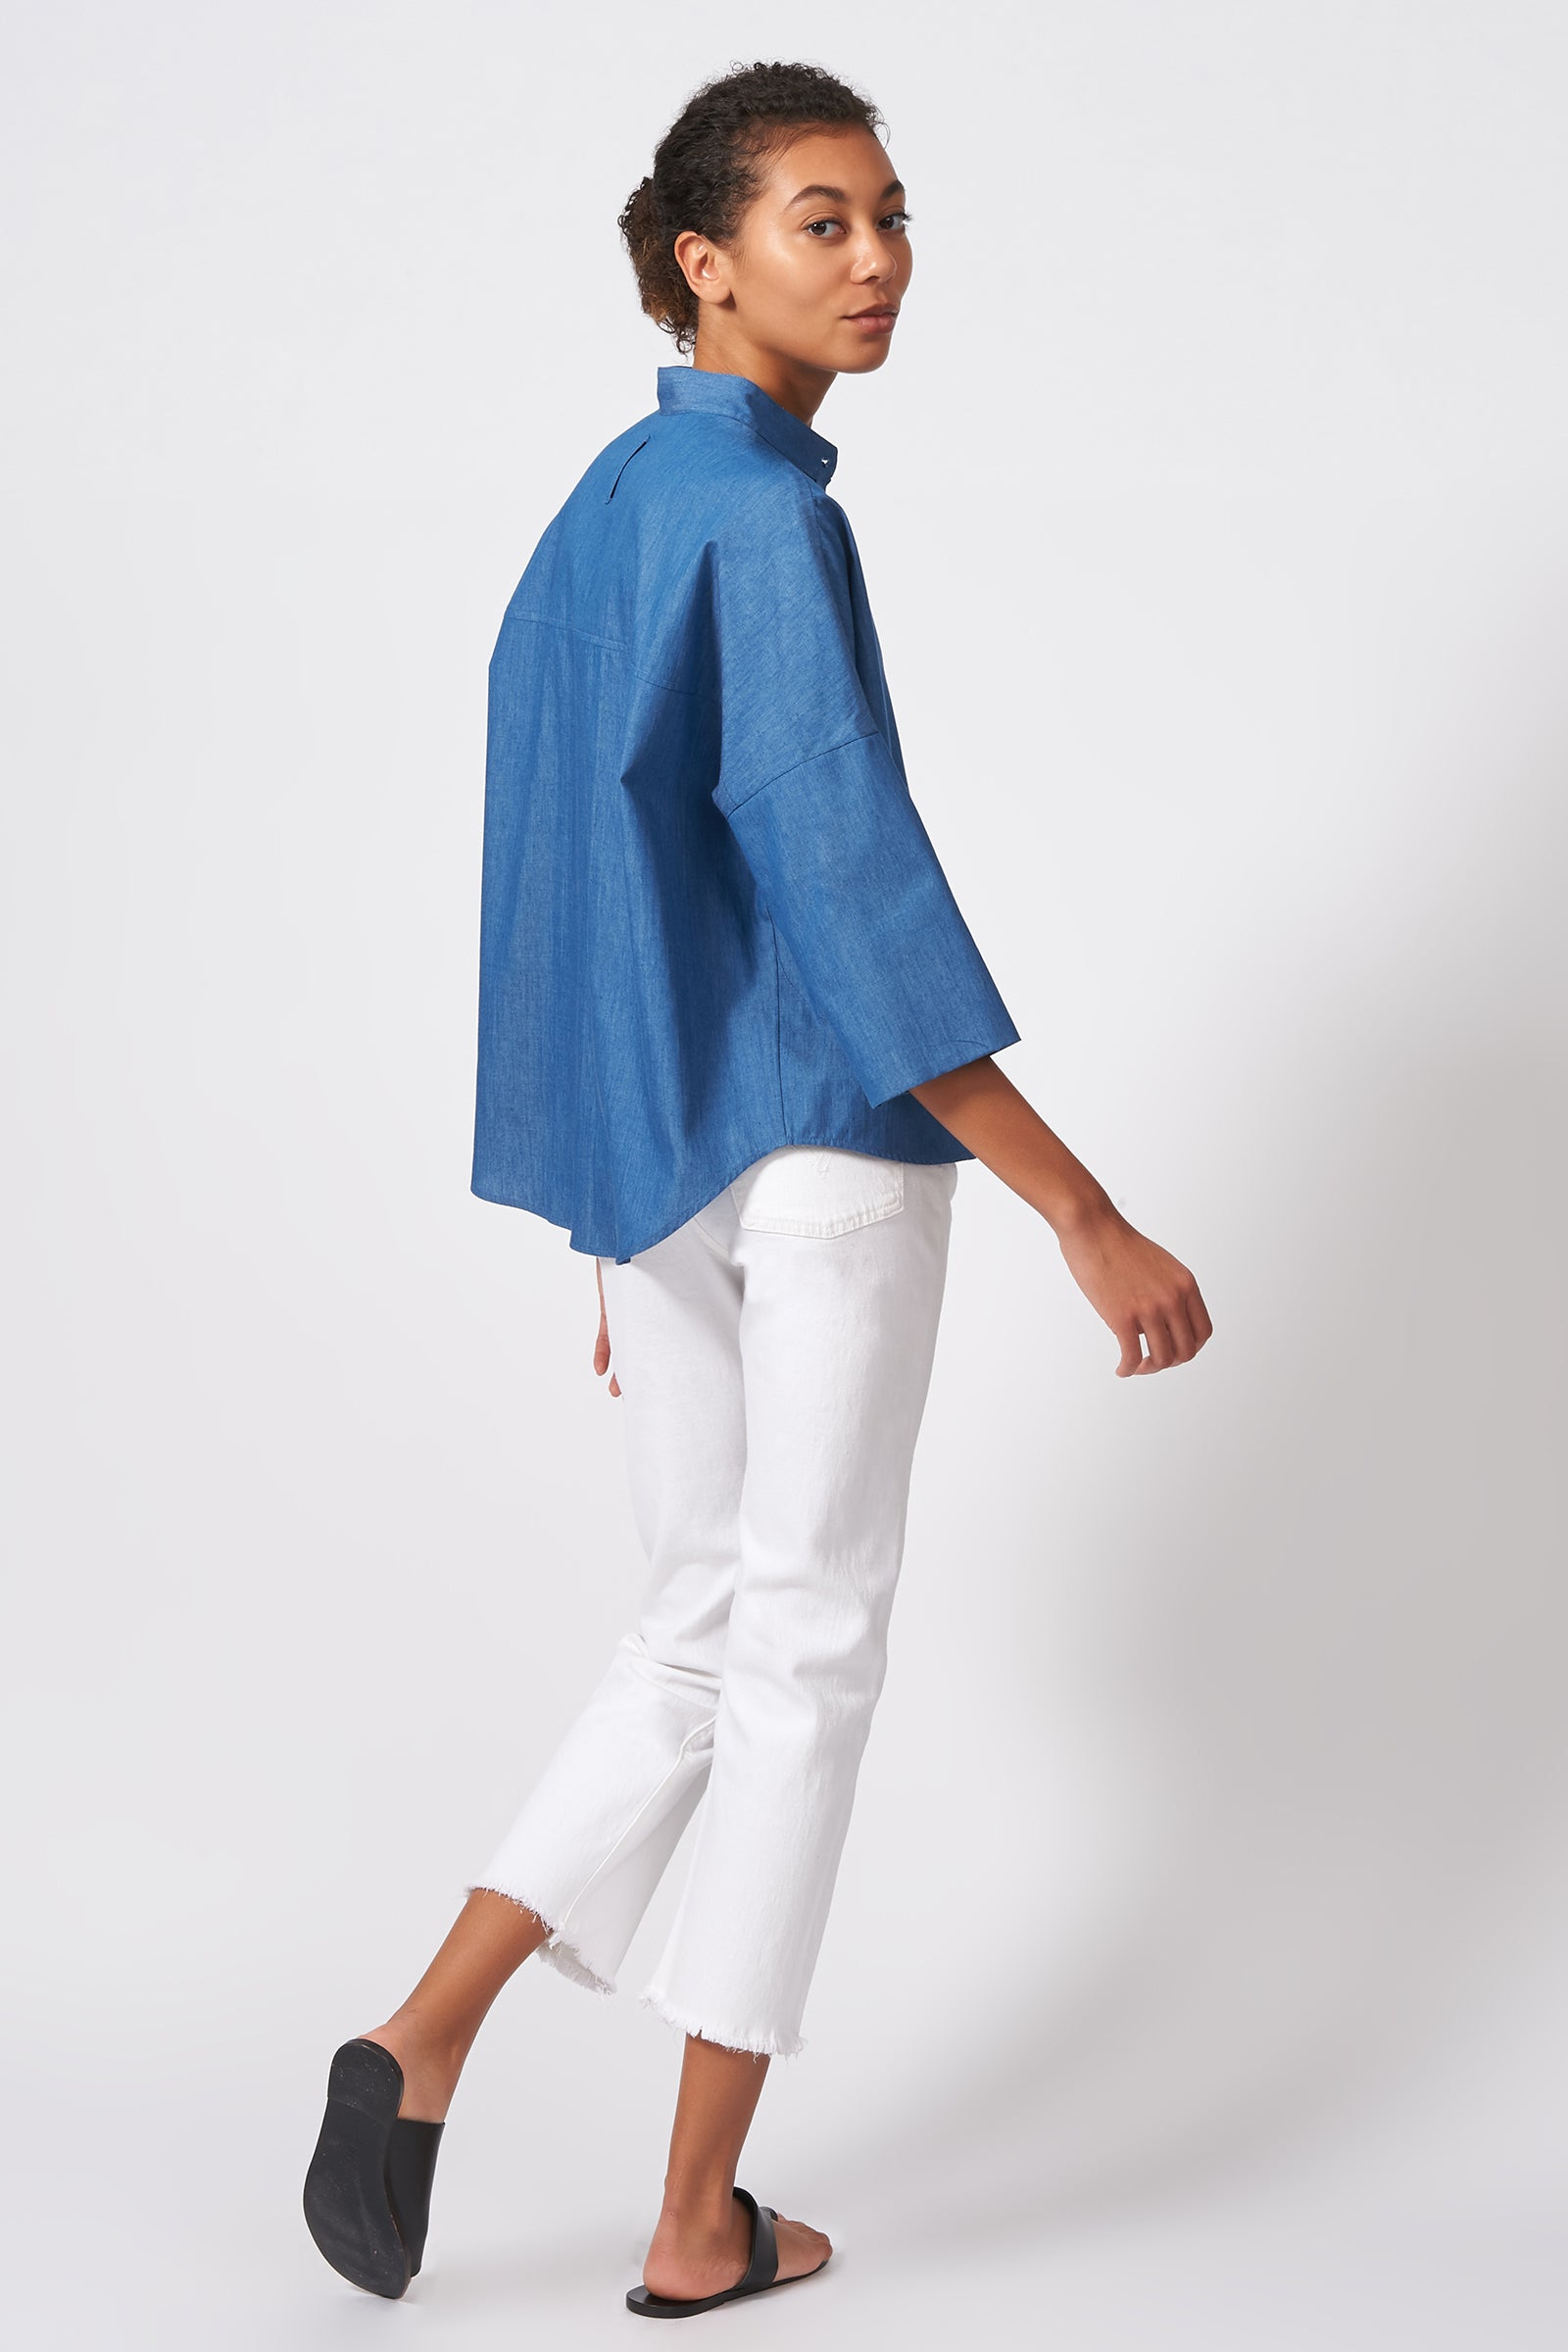 Kal Rieman Drop Shoulder Top in Light Indigo on Model Front Full View